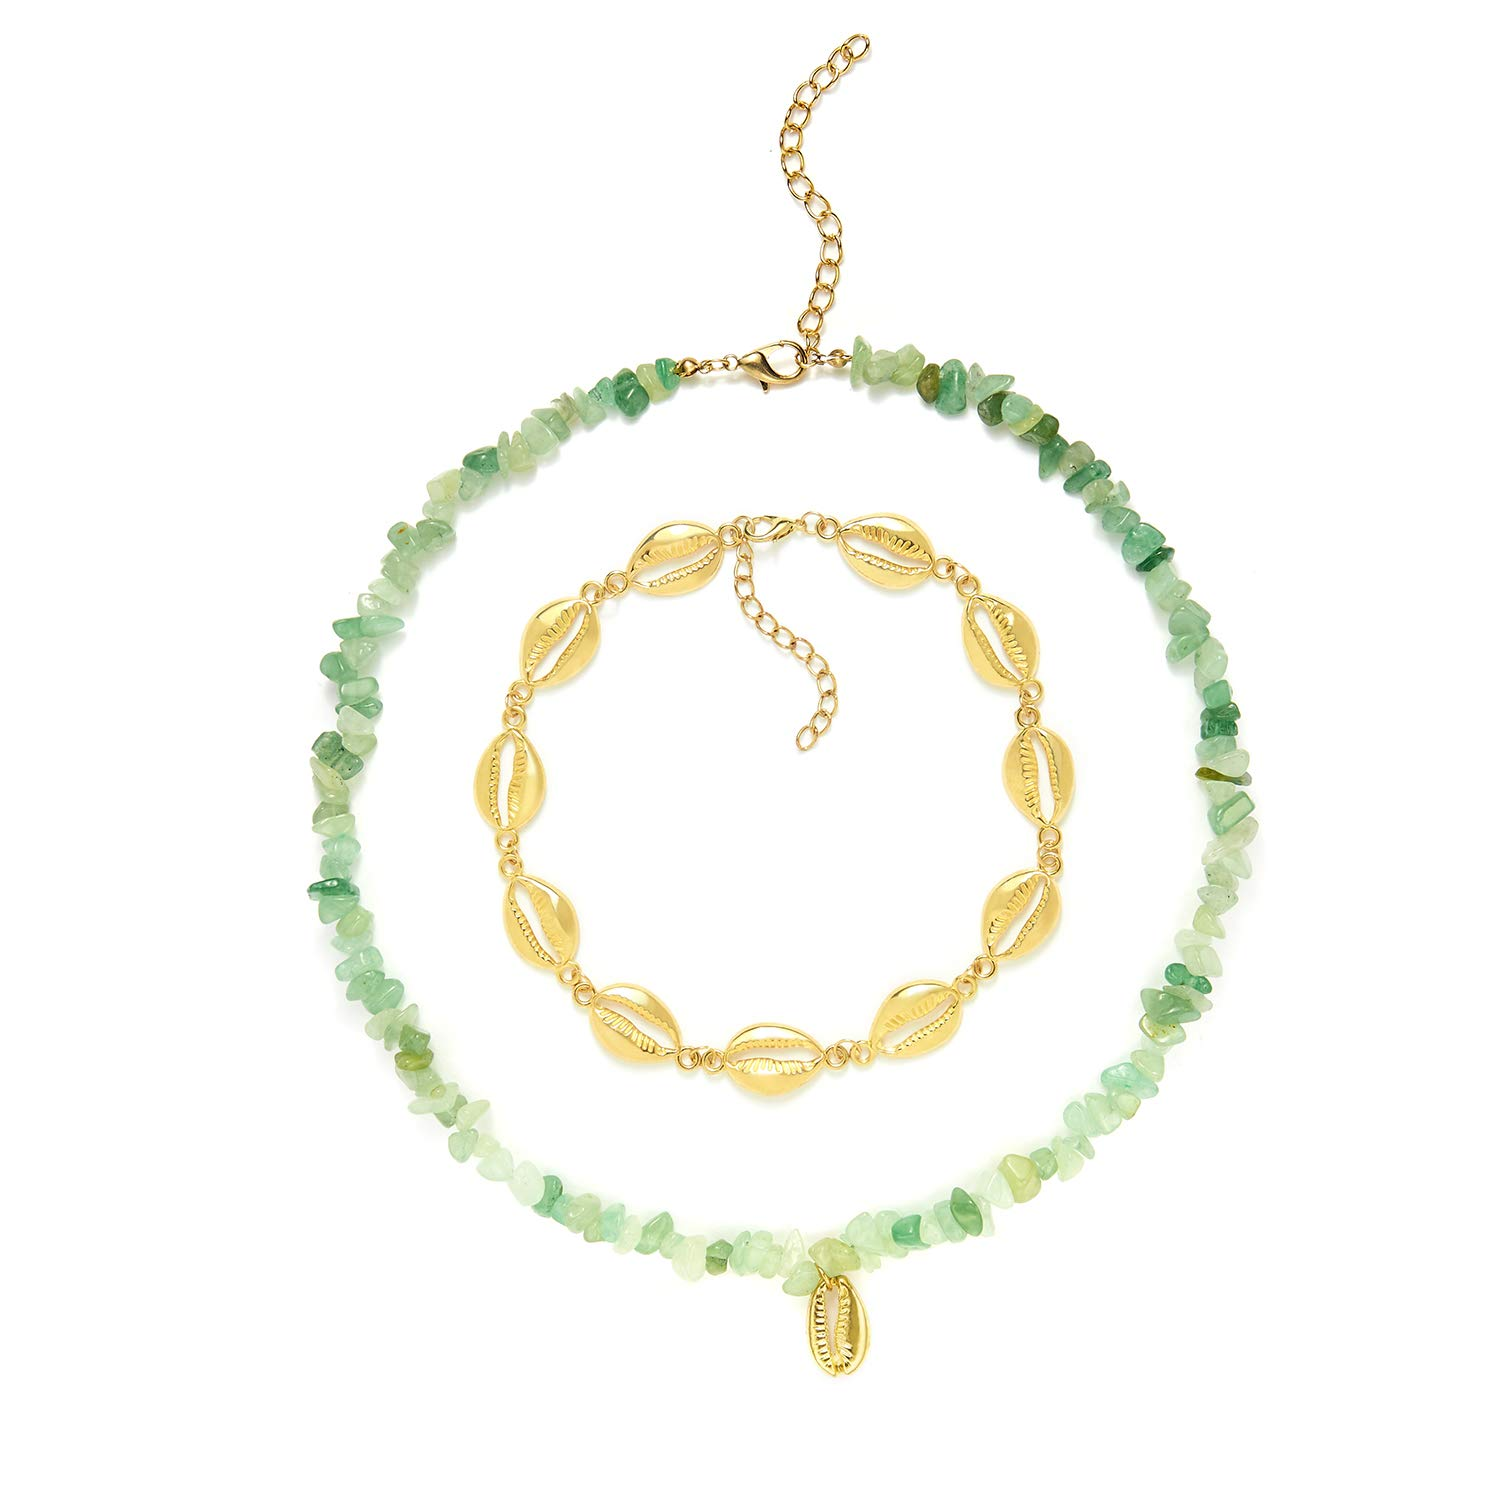 SIVNI Shell Choker Necklace for Women Girls Boho Beaded Chokers Layered Statement Gold Necklace